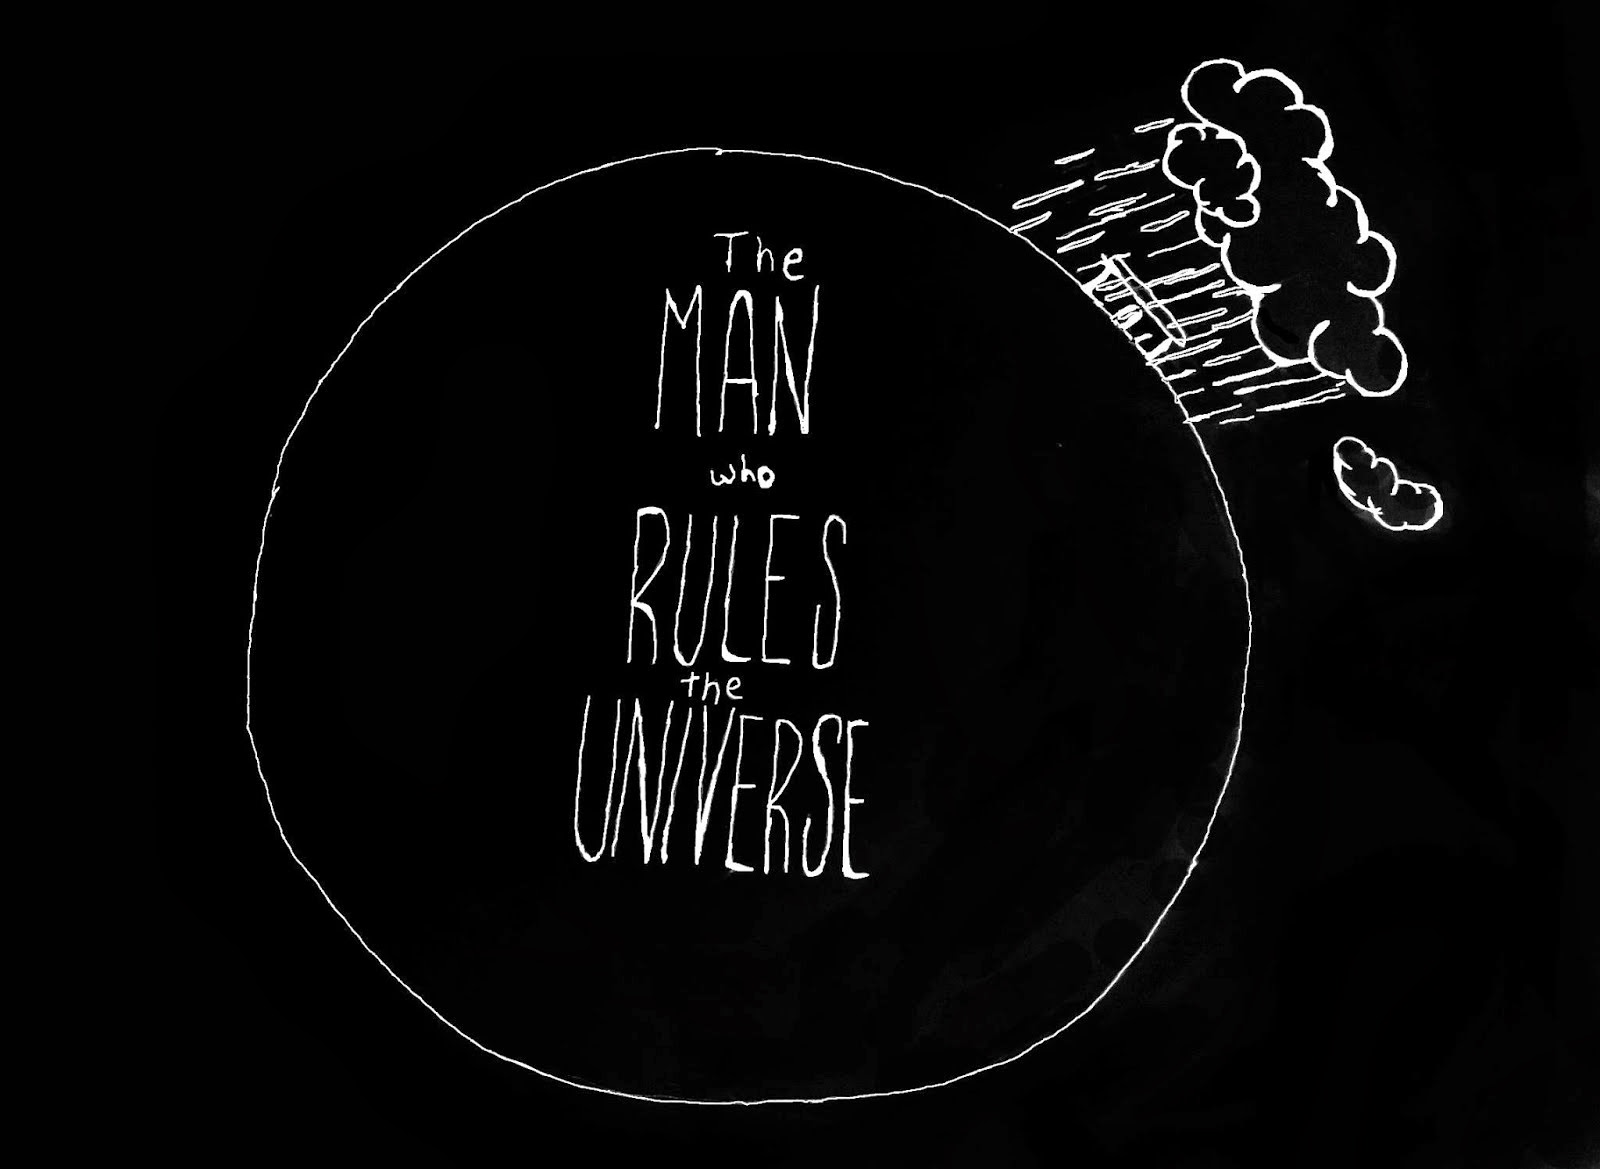 The Man who Rules the Universe